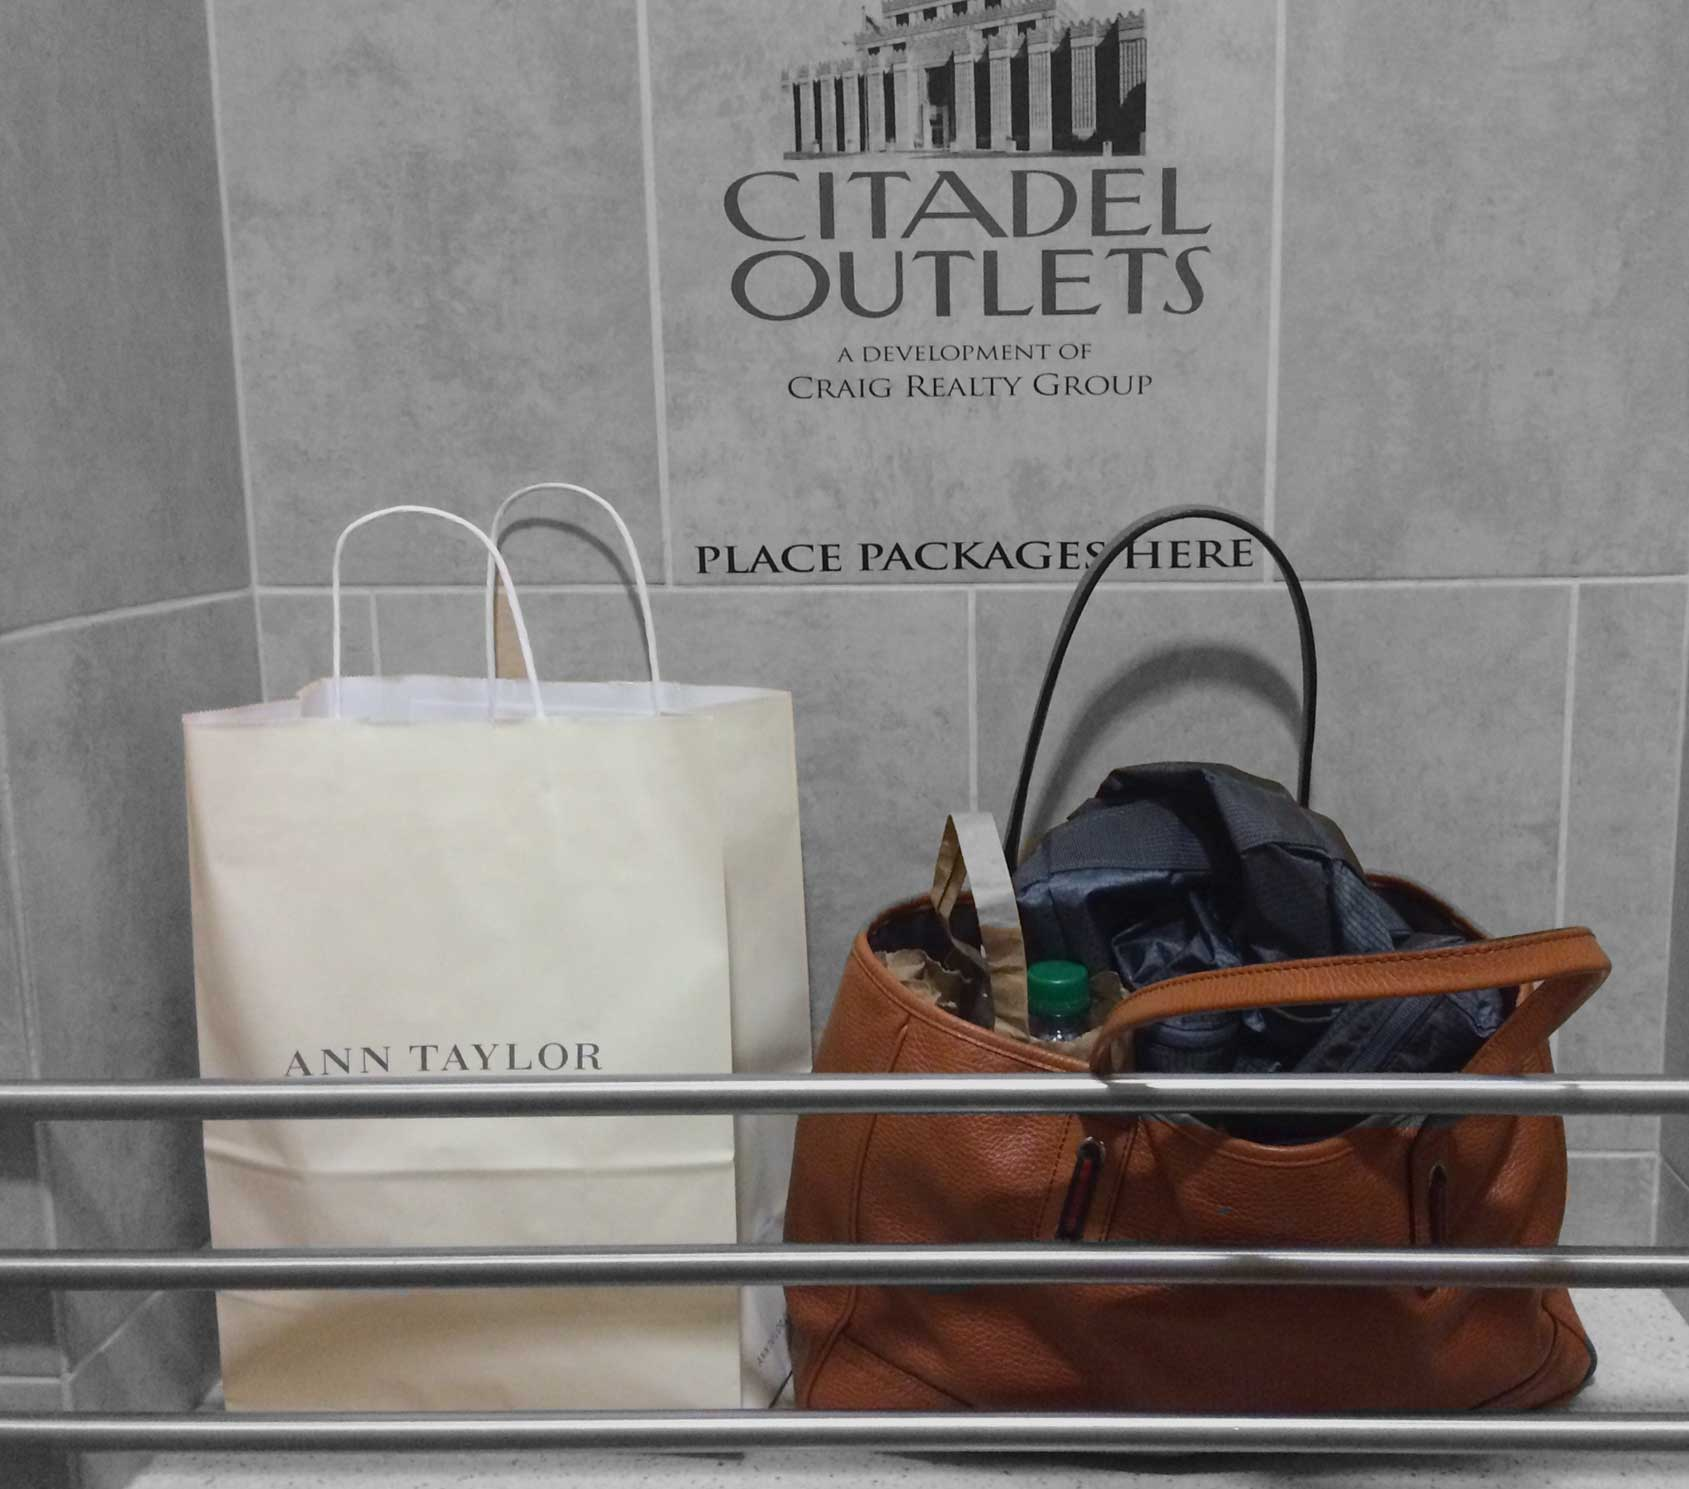 I like that there is place in the restrooms to rest your shopping bags! Citadel Outlets, LA, CA, USA. Image©gunjanvirk